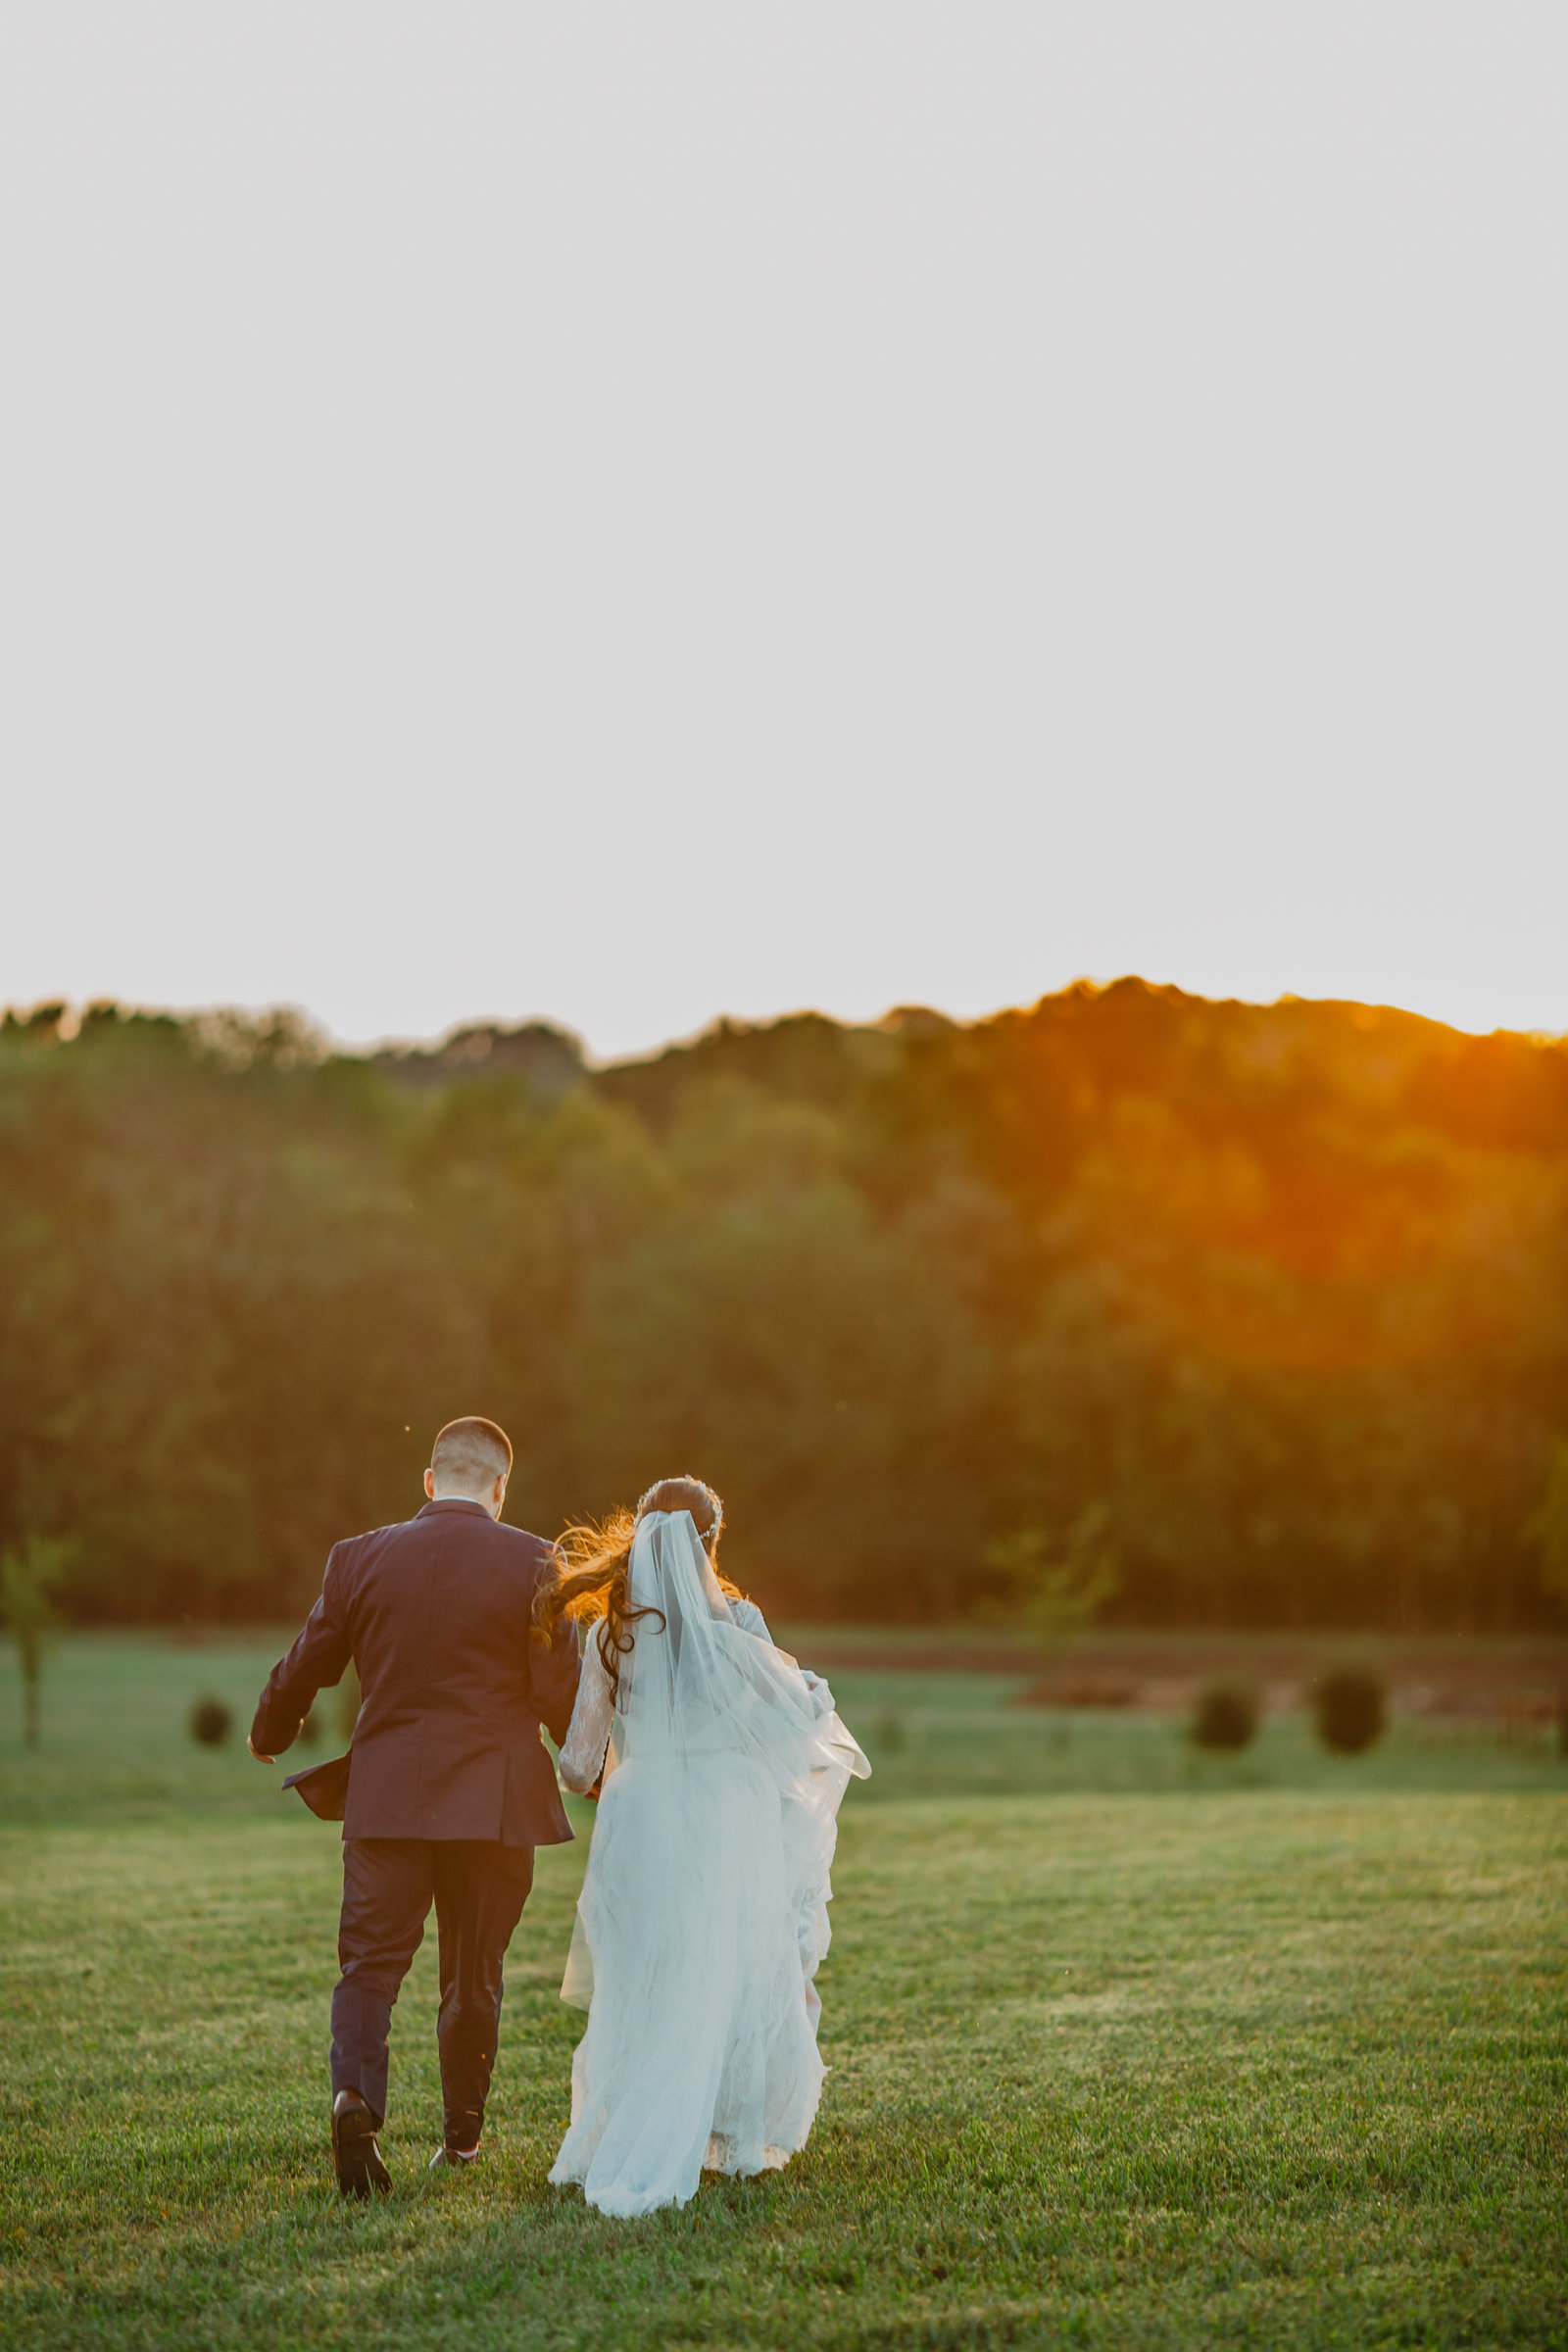 During an epic sunset Bride and Groom run away holding hands at Allenbrooke Farm